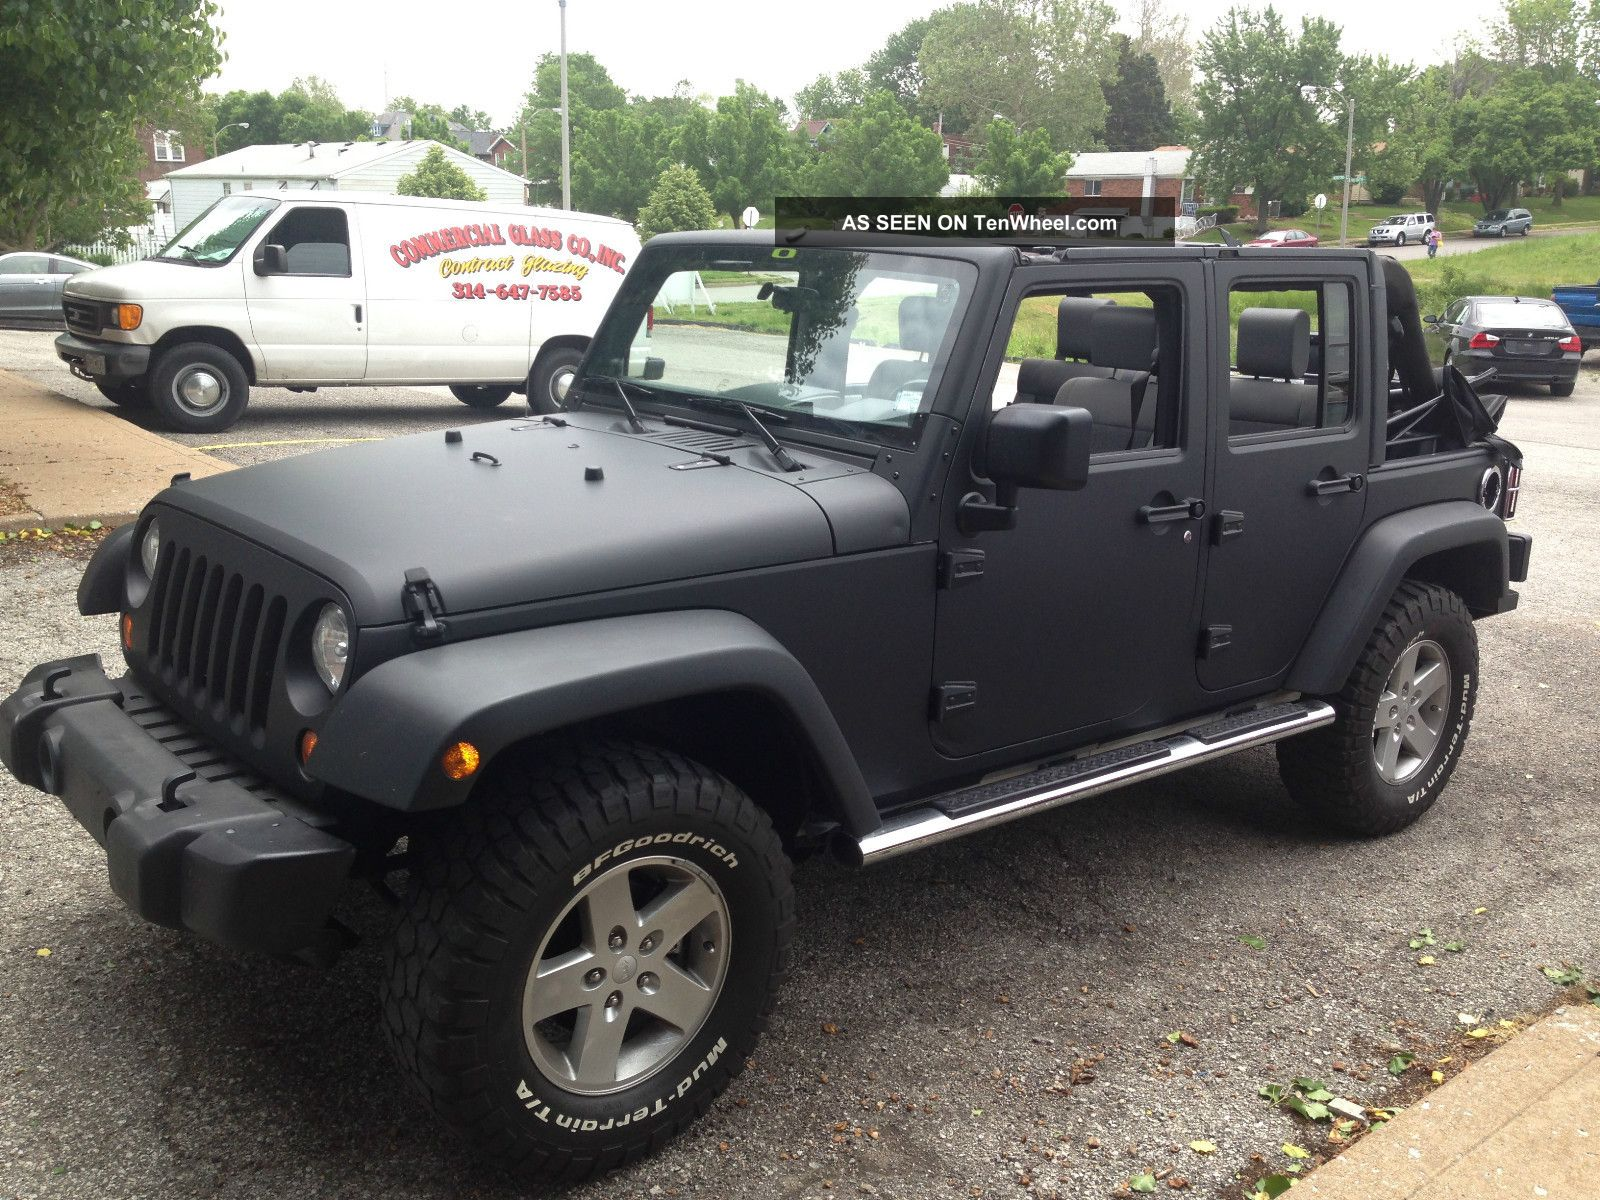 2008 Jeep Wrangler Unlimited X 4x4 Wrapped Matte Black Lift Ram Air